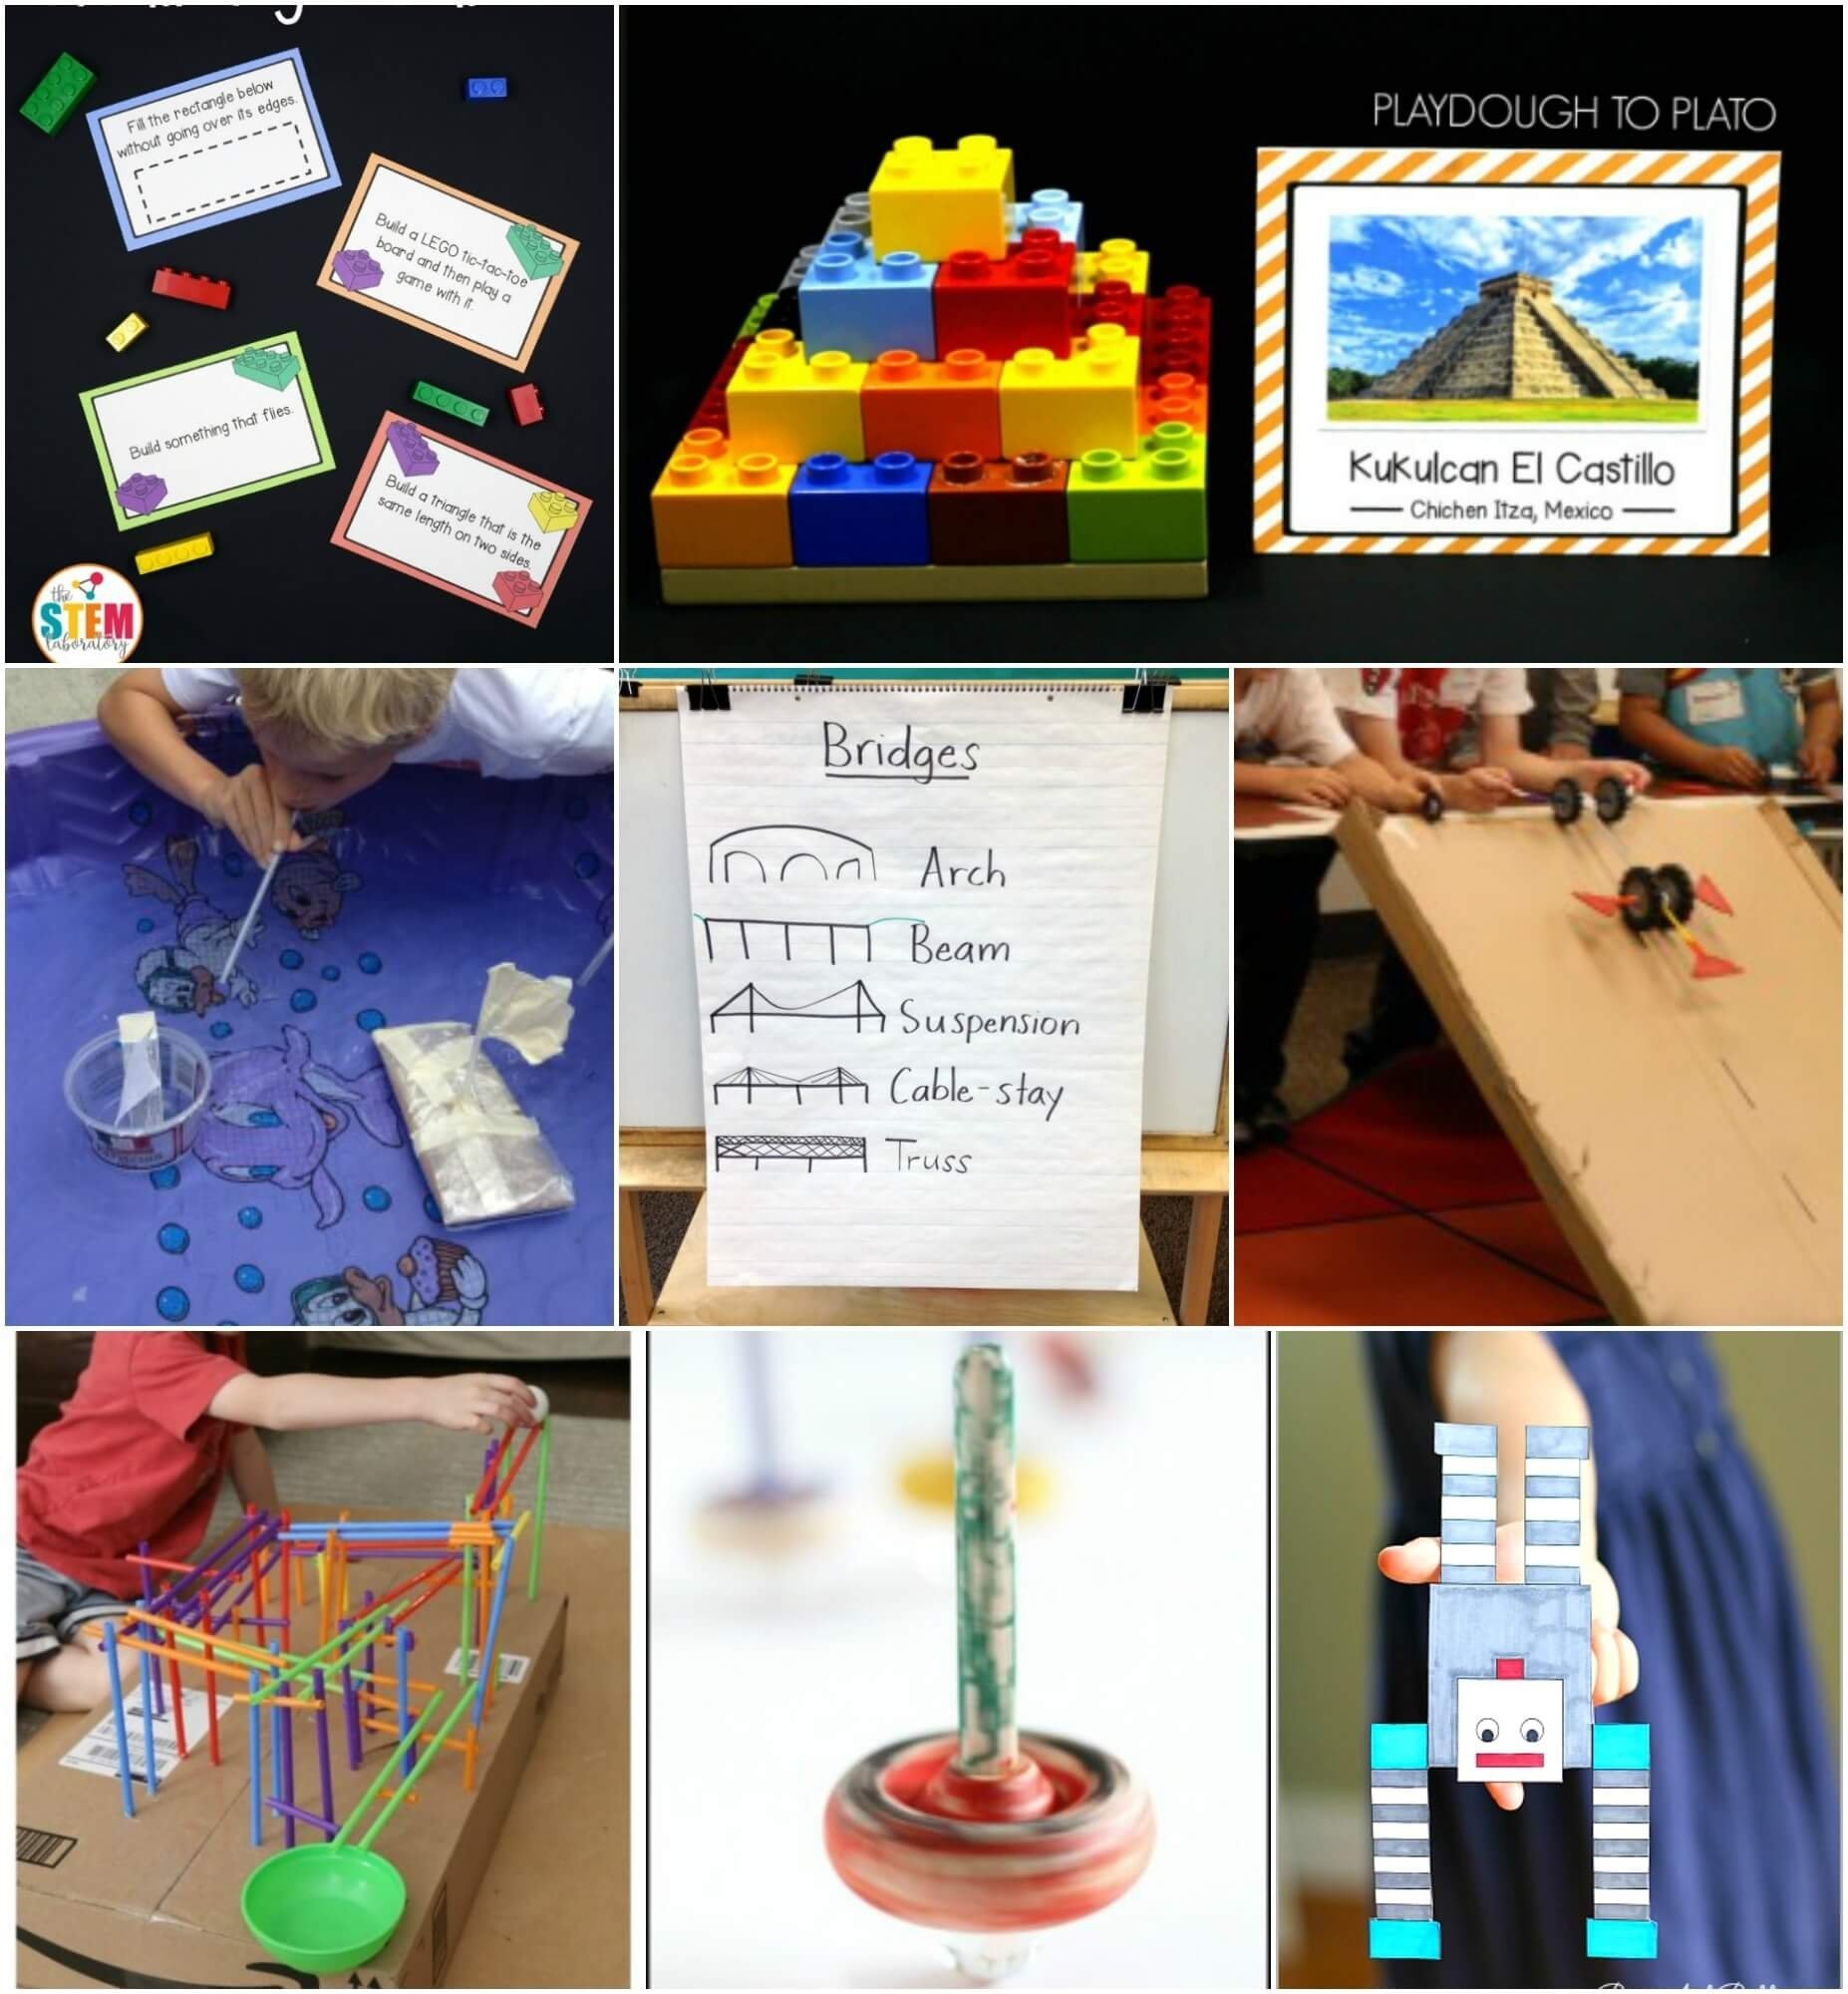 10 Wonderful Stem Project Ideas For Middle School 40 stem activities for kids playdough to plato 1 2020